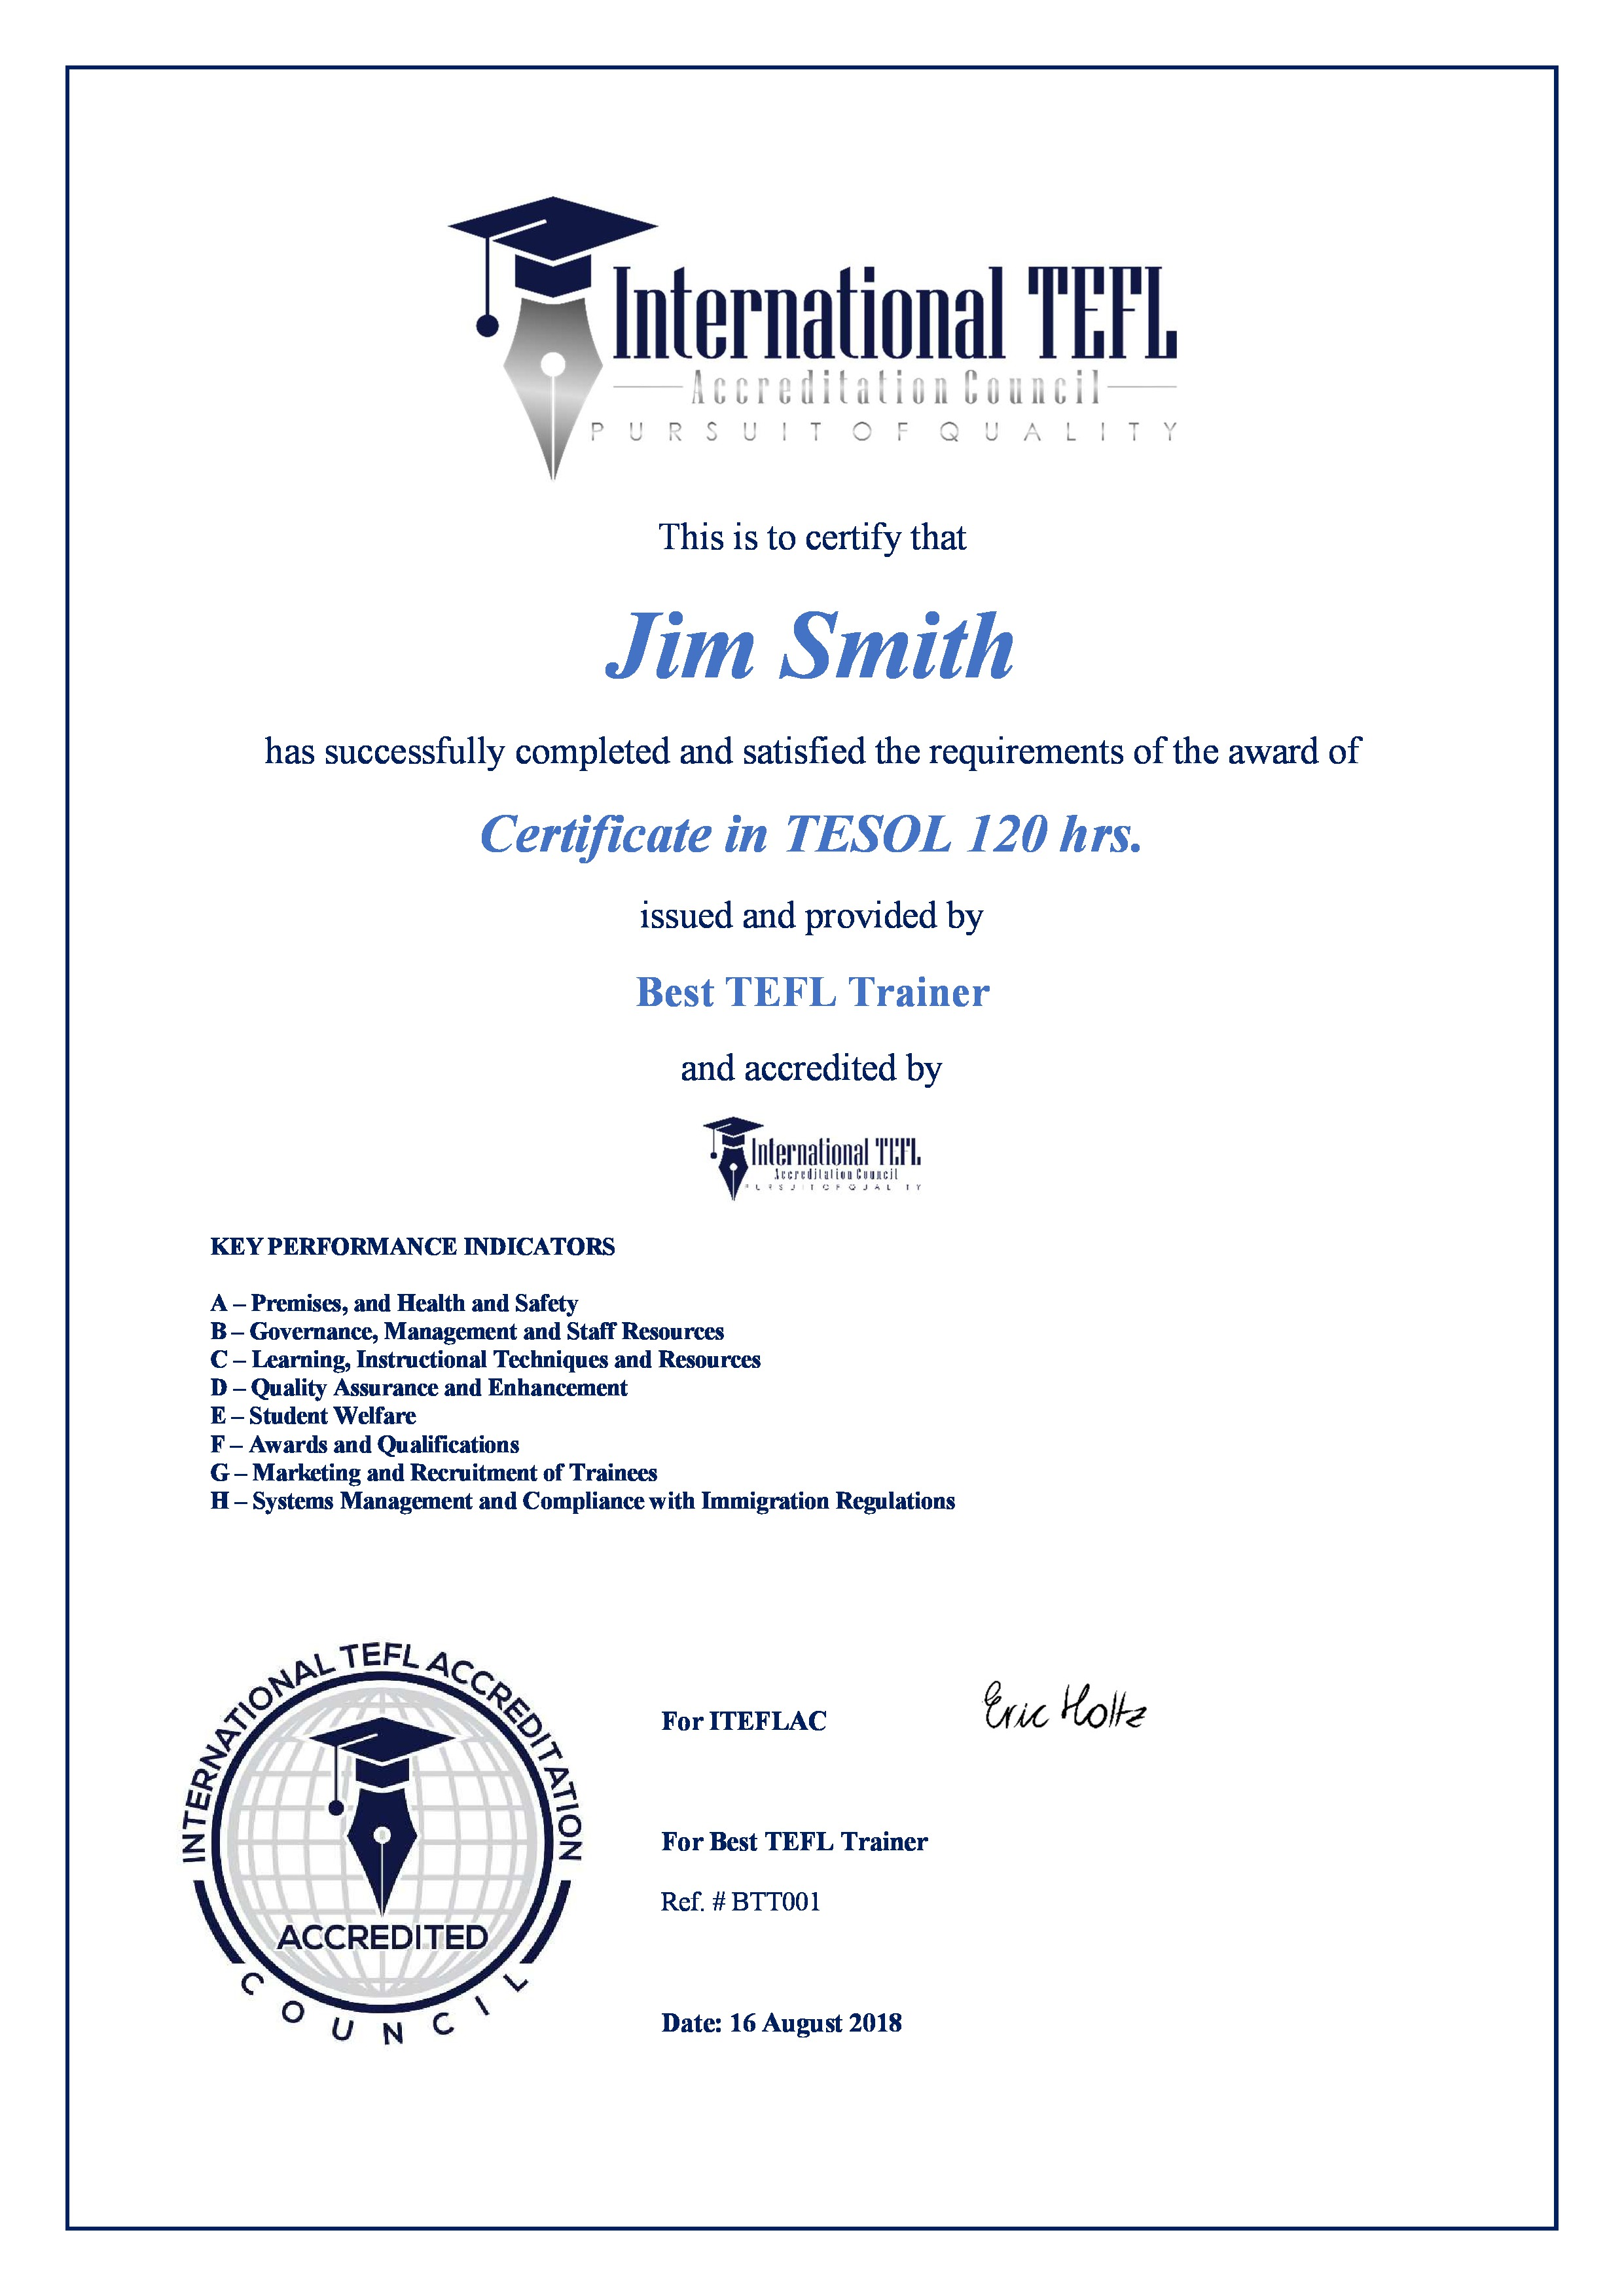 Iteflac Student Certificates Tefl Accreditation Iteflac